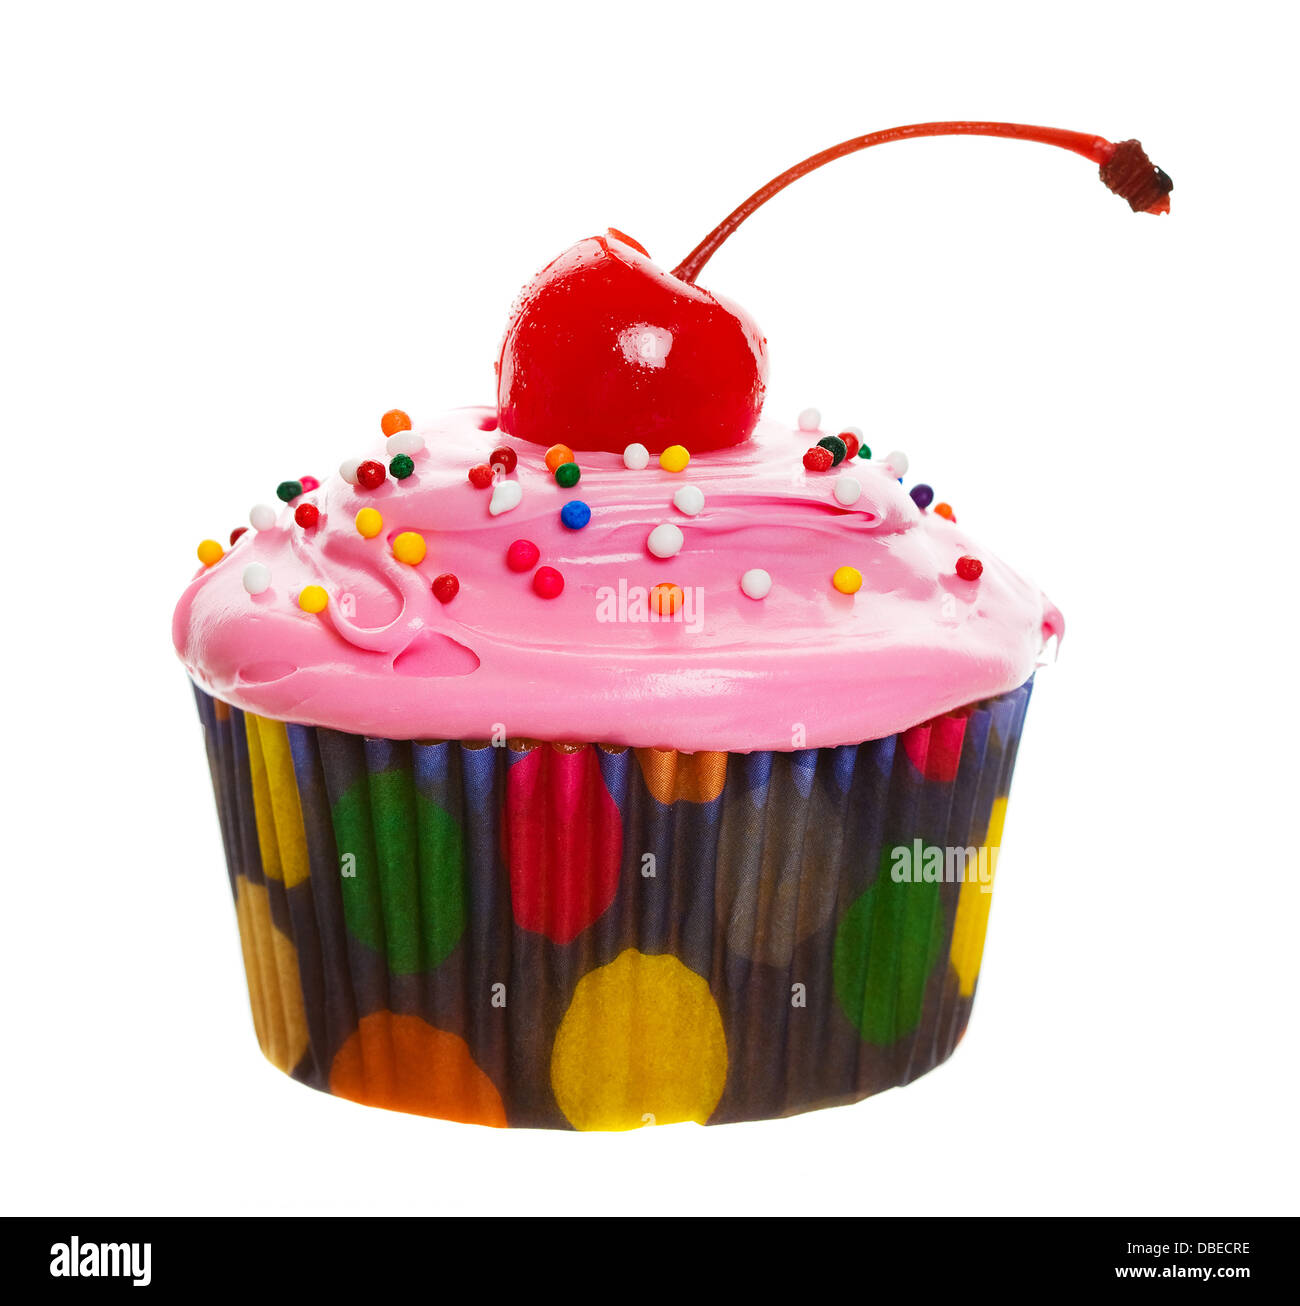 A Colorful Cupcake With A Cherry On Top Stock Photo Alamy